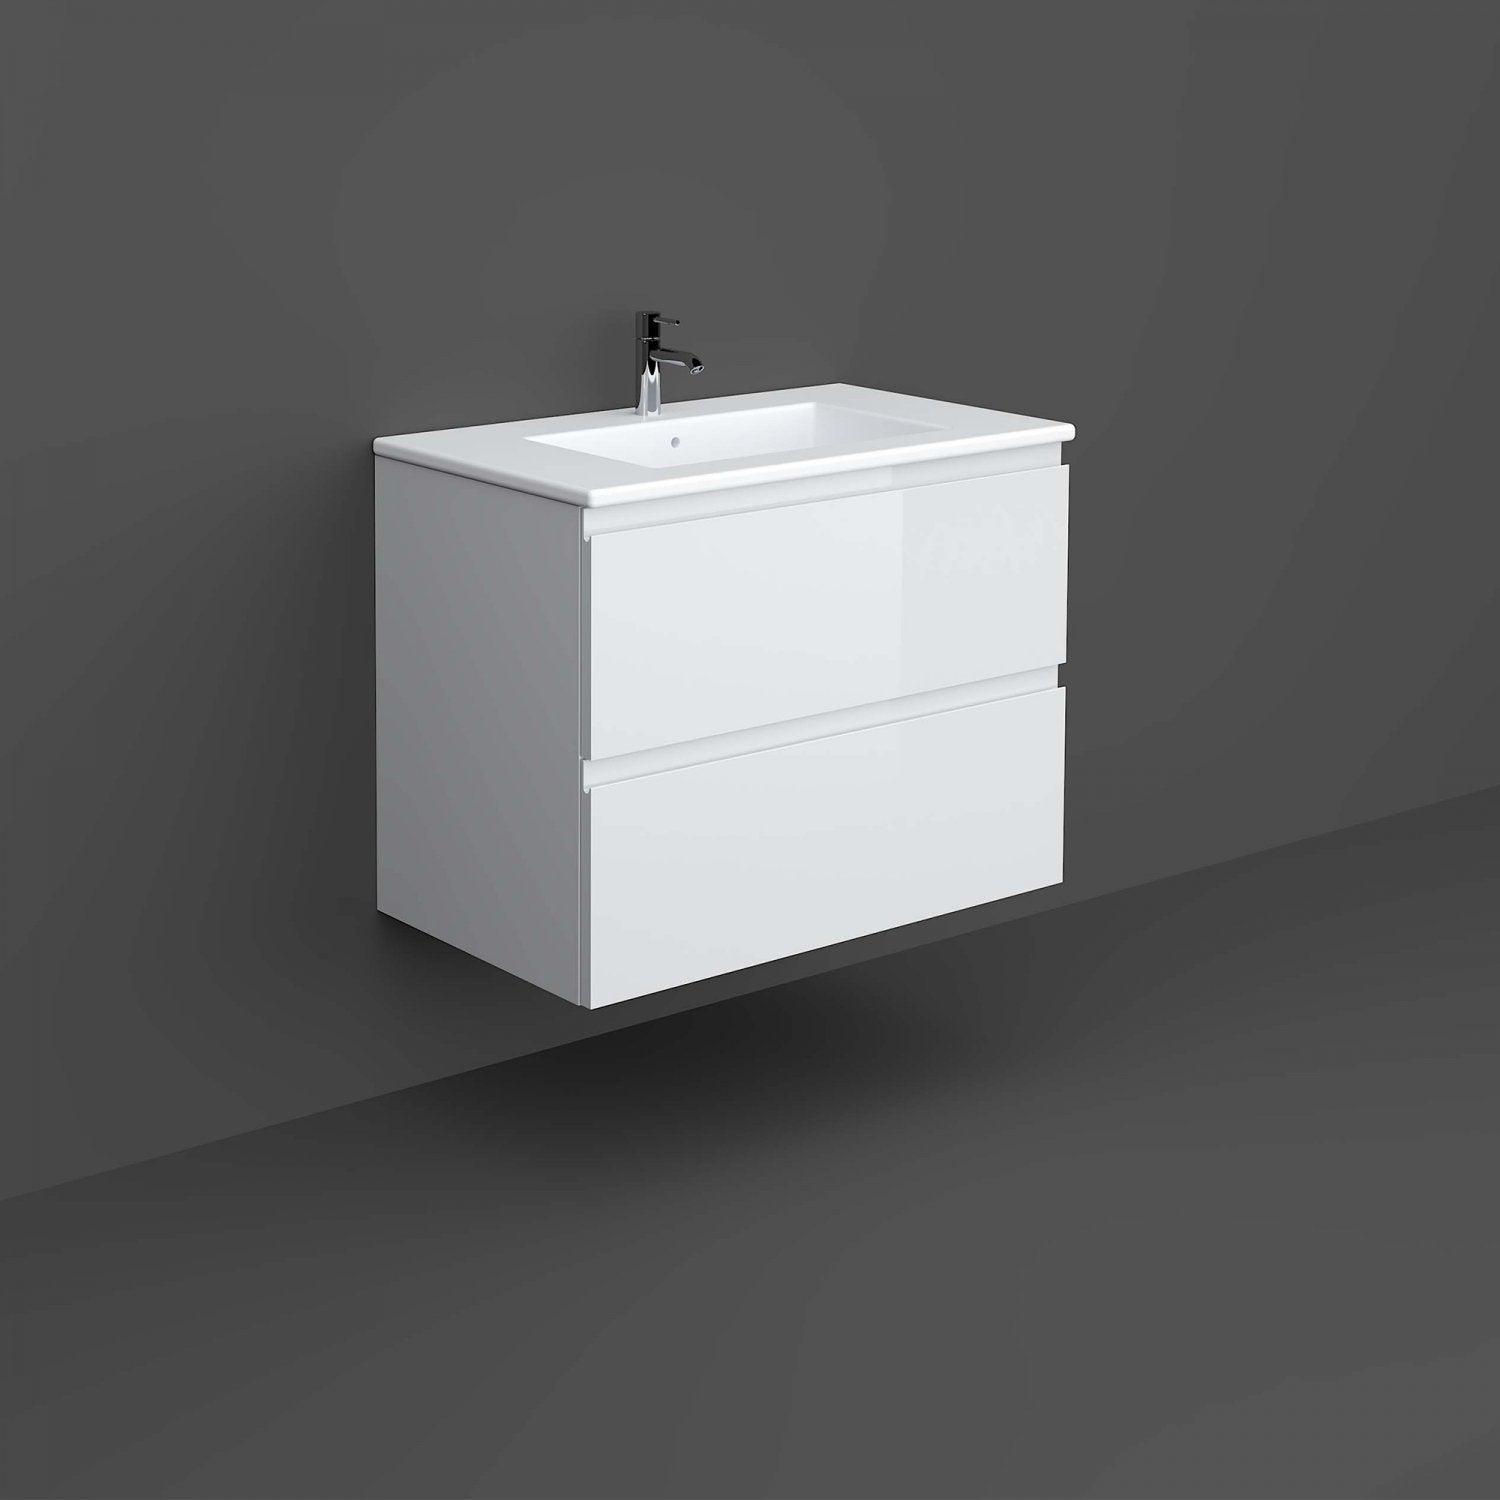 RAK Joy Wall Hung Vanity Unit with Basin 800mm Wide - Pure White